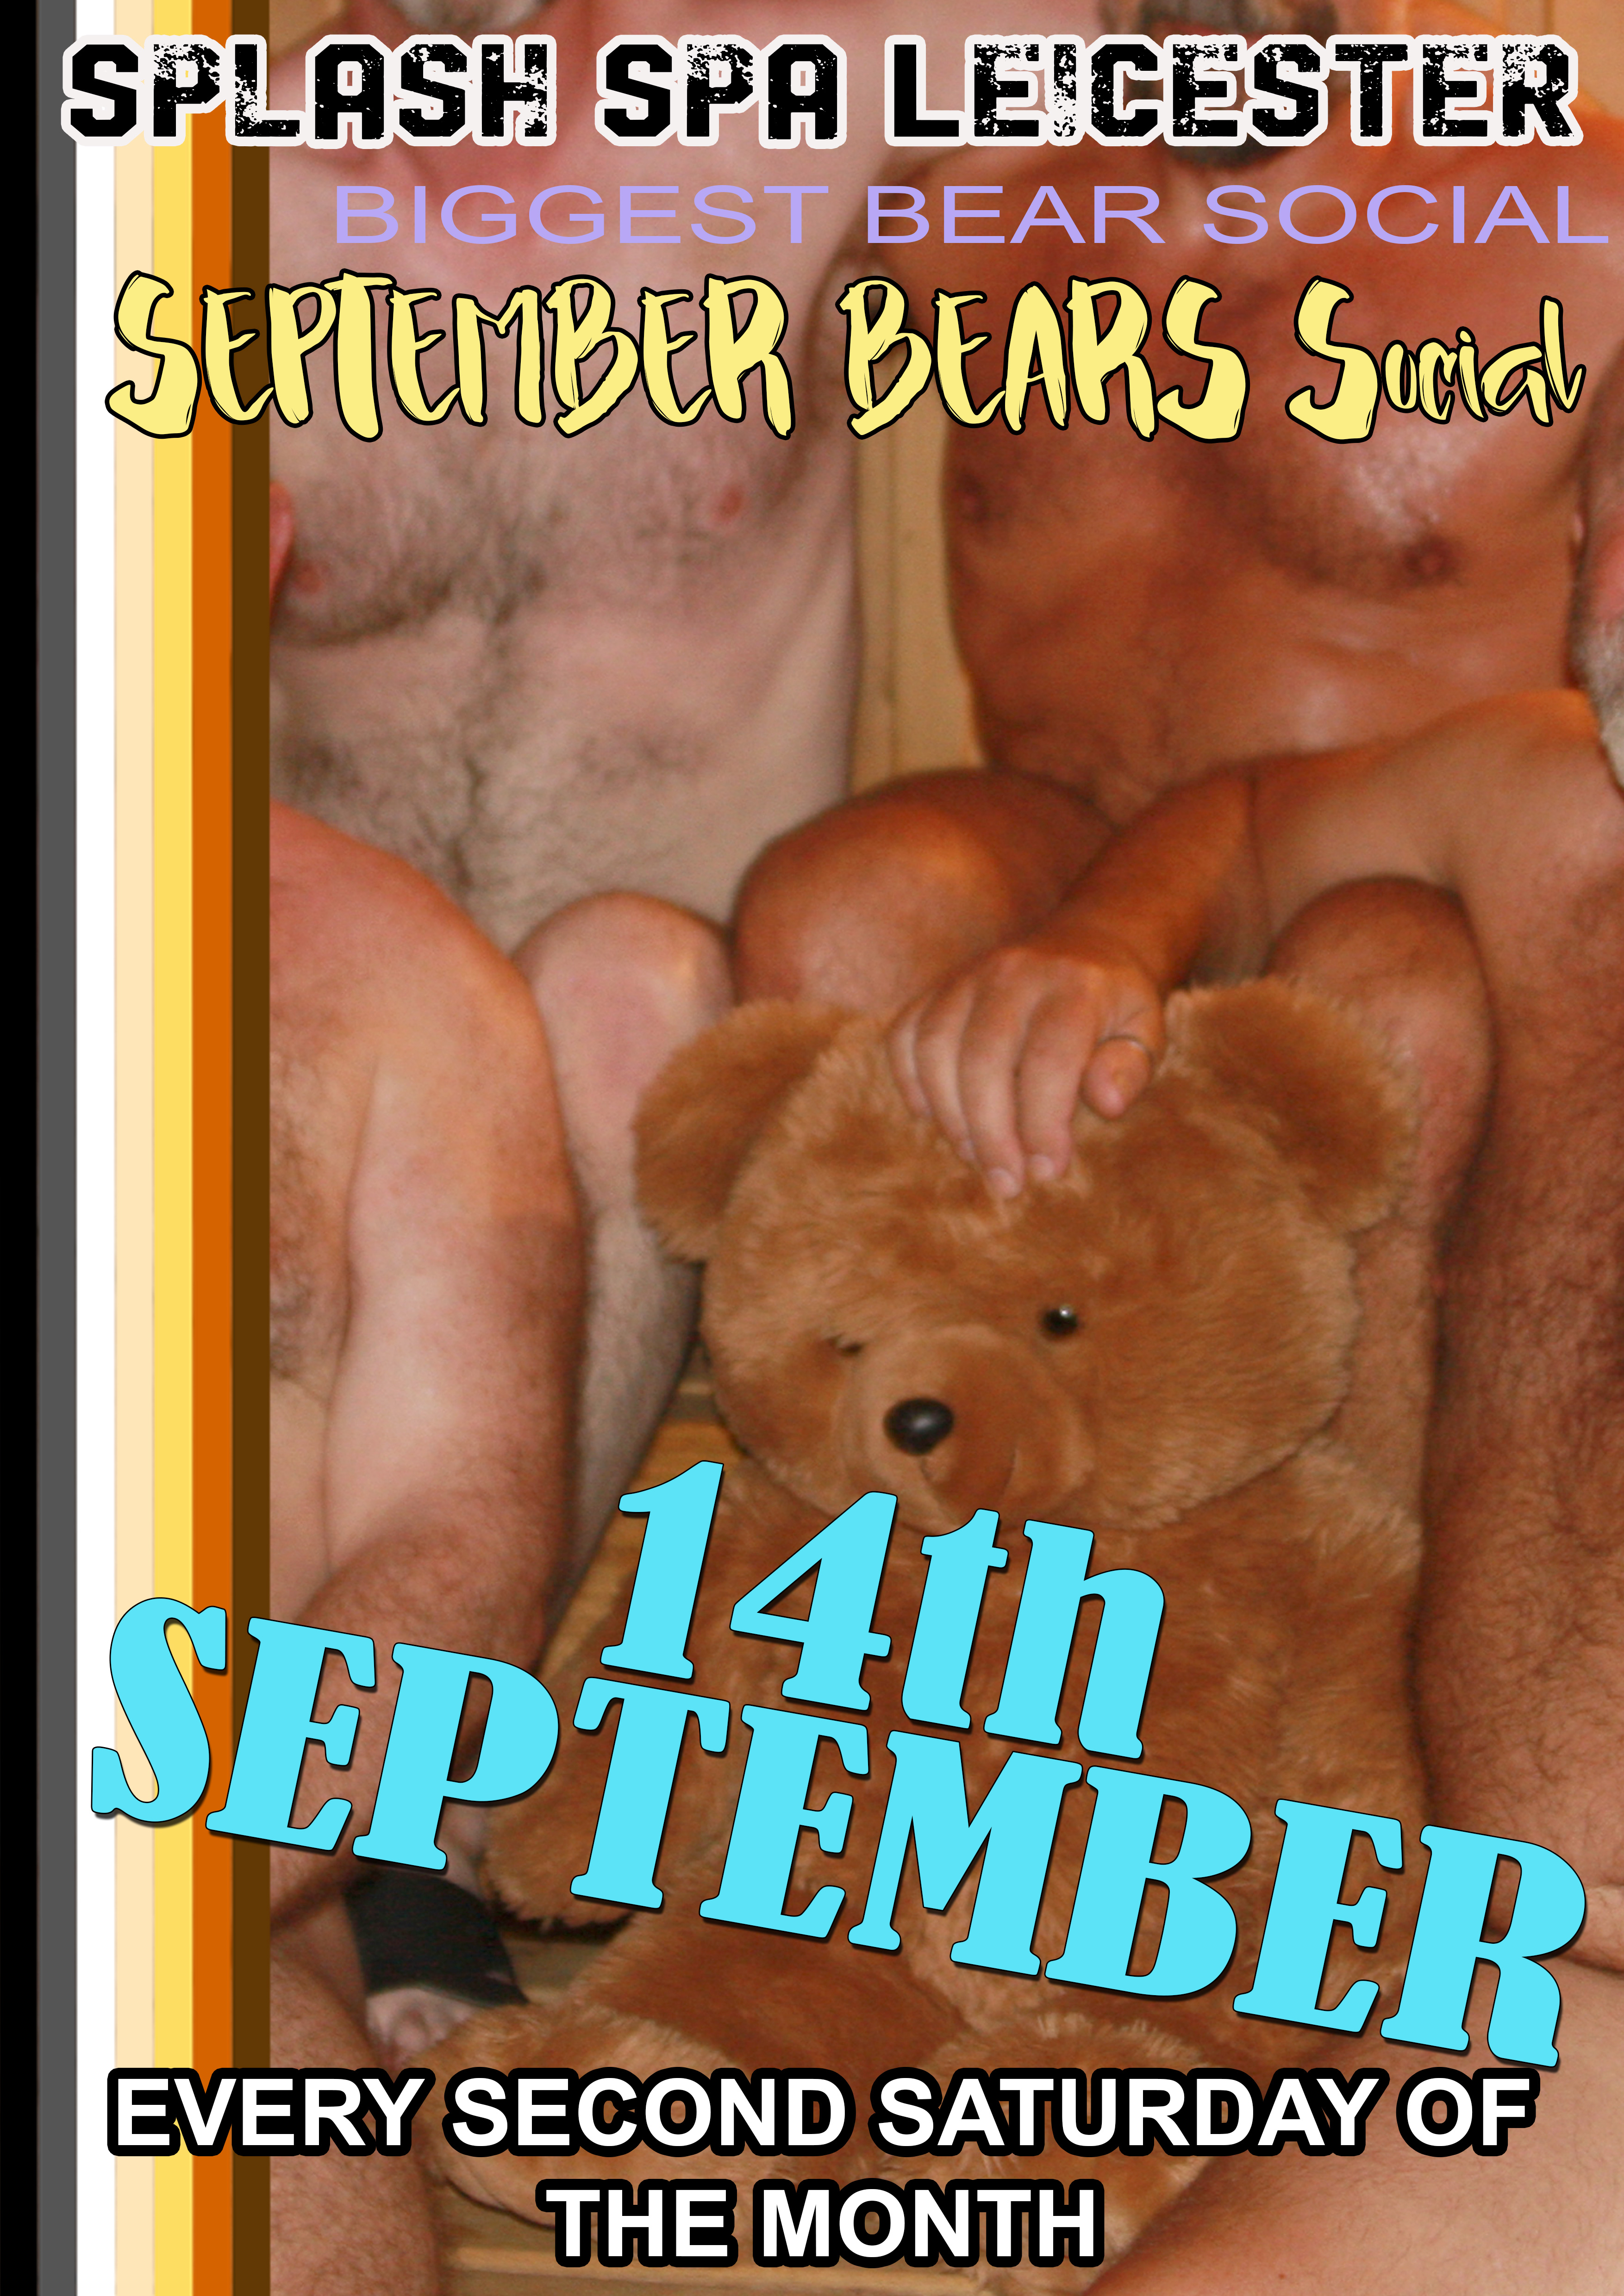 Bears party splash leicester